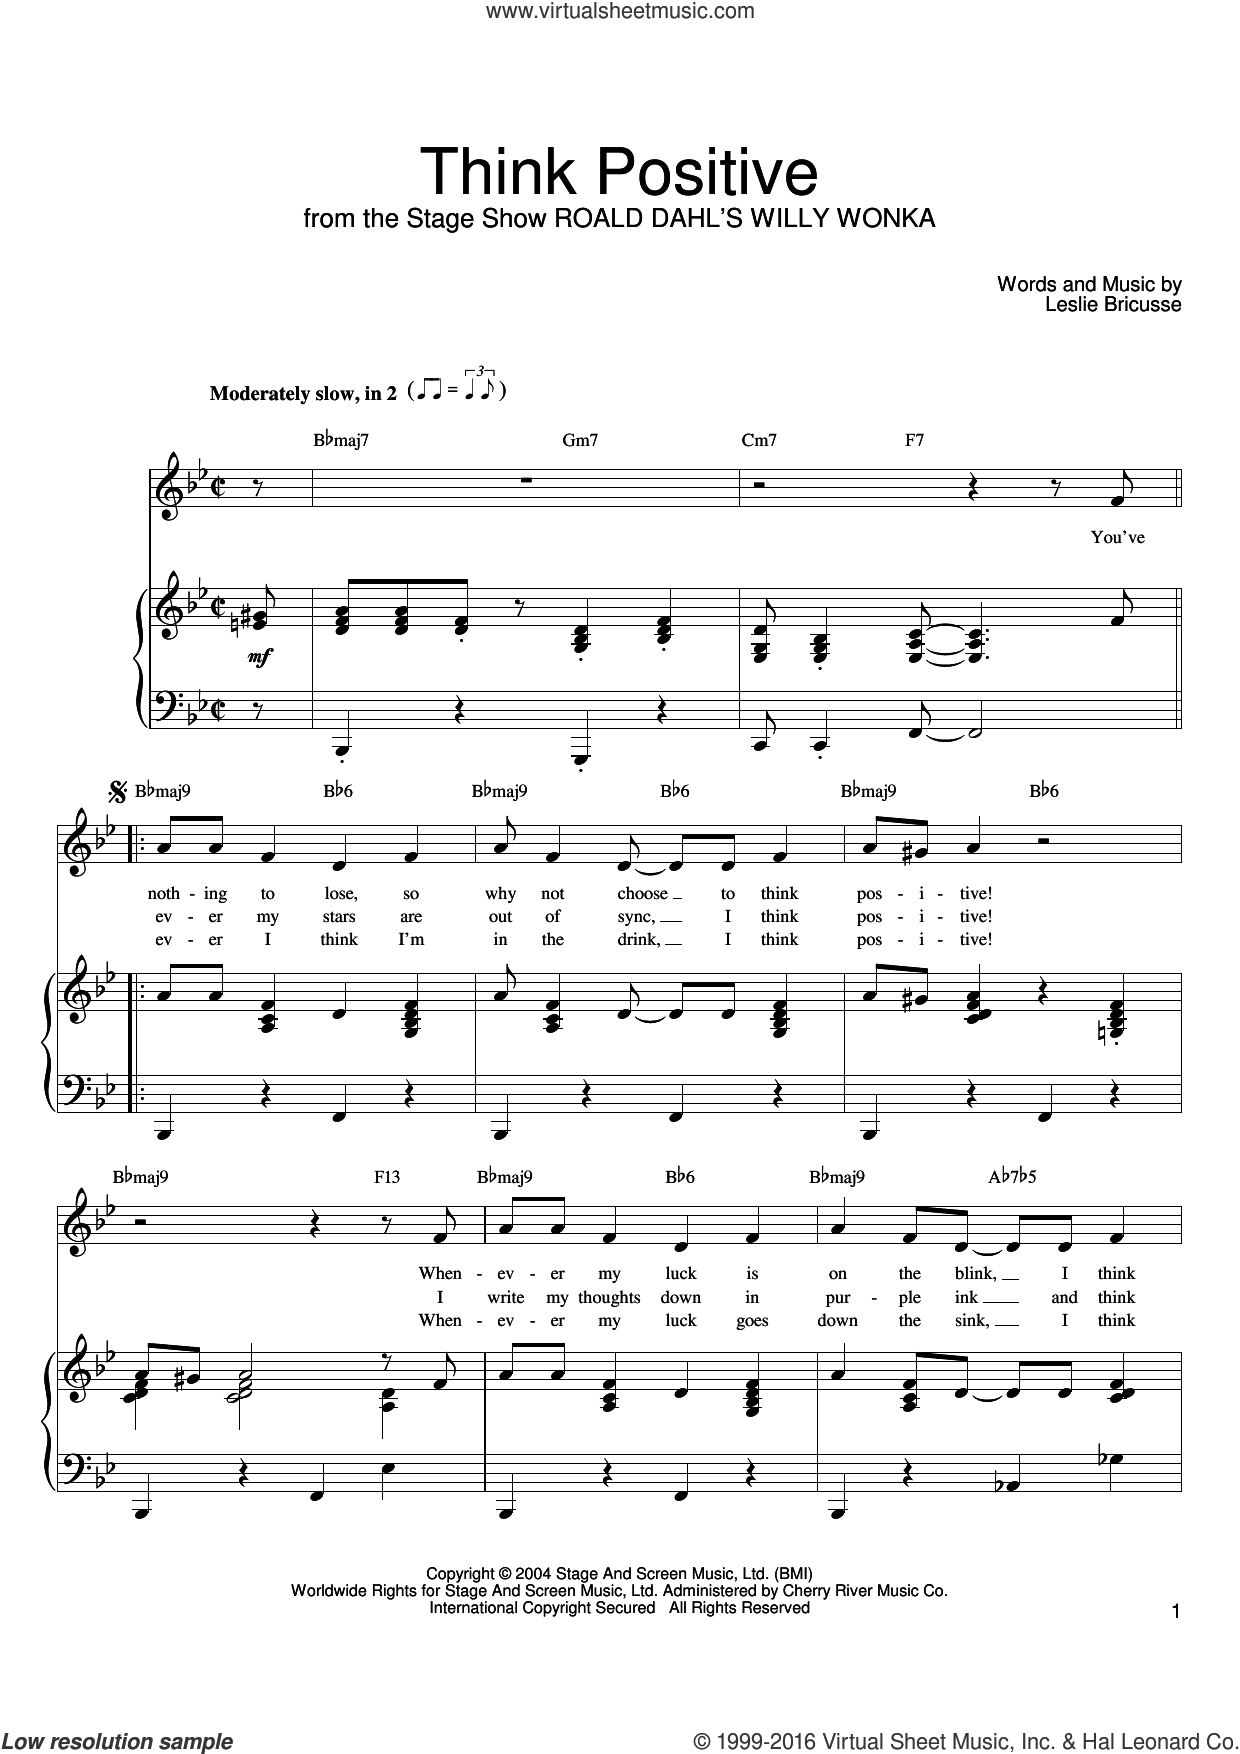 Think Positive sheet music for voice, piano or guitar by Leslie Bricusse. Score Image Preview.